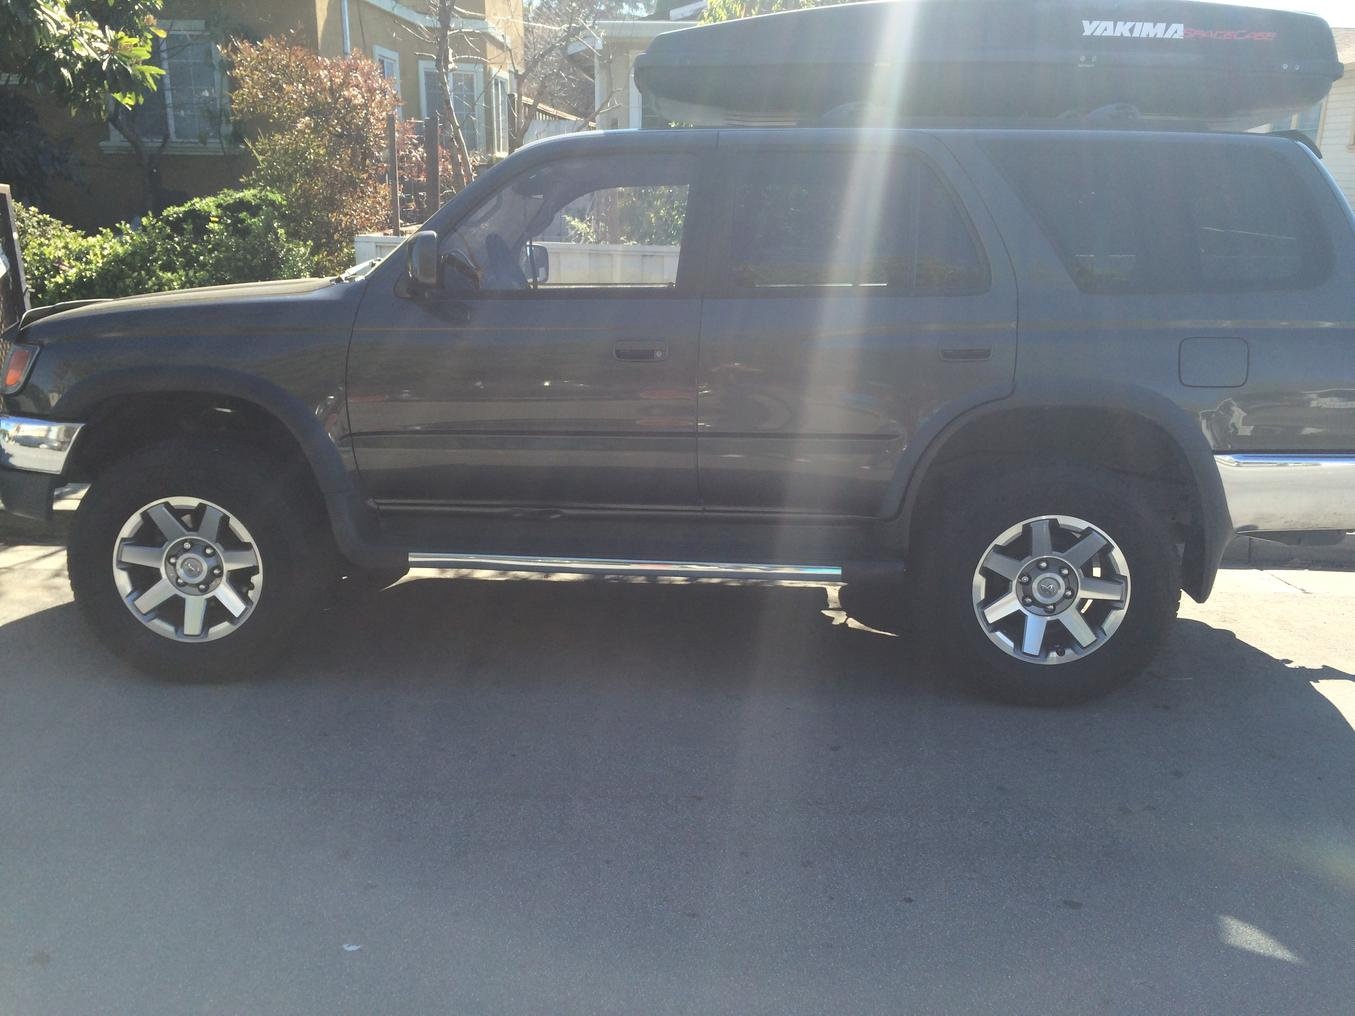 fs mint 2016 4runner trail premium wheels with tires and tpms sensors toyota 4runner forum. Black Bedroom Furniture Sets. Home Design Ideas